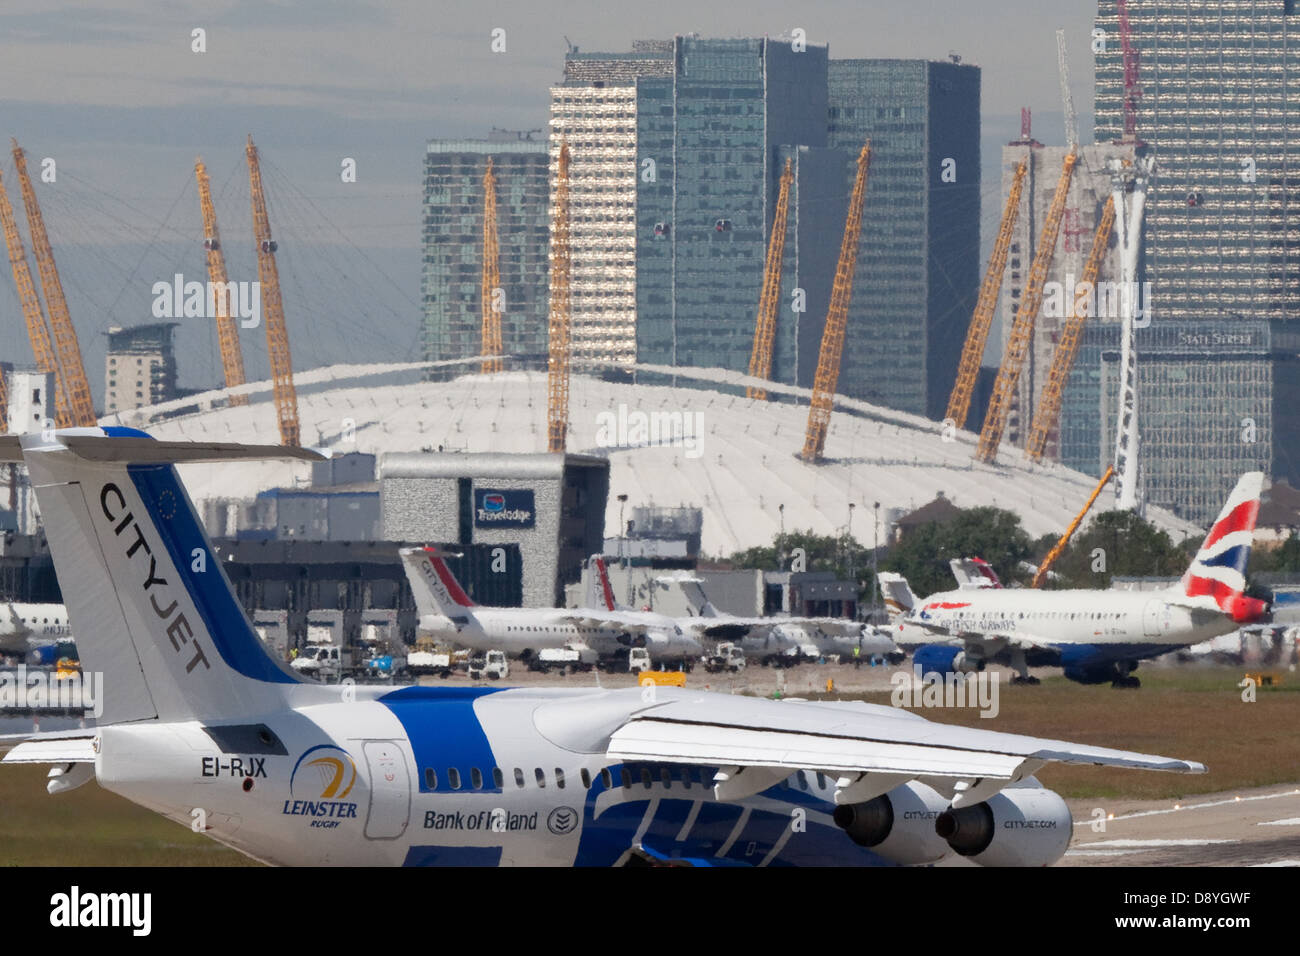 Jet ready for take-off at London City Airport - Stock Image